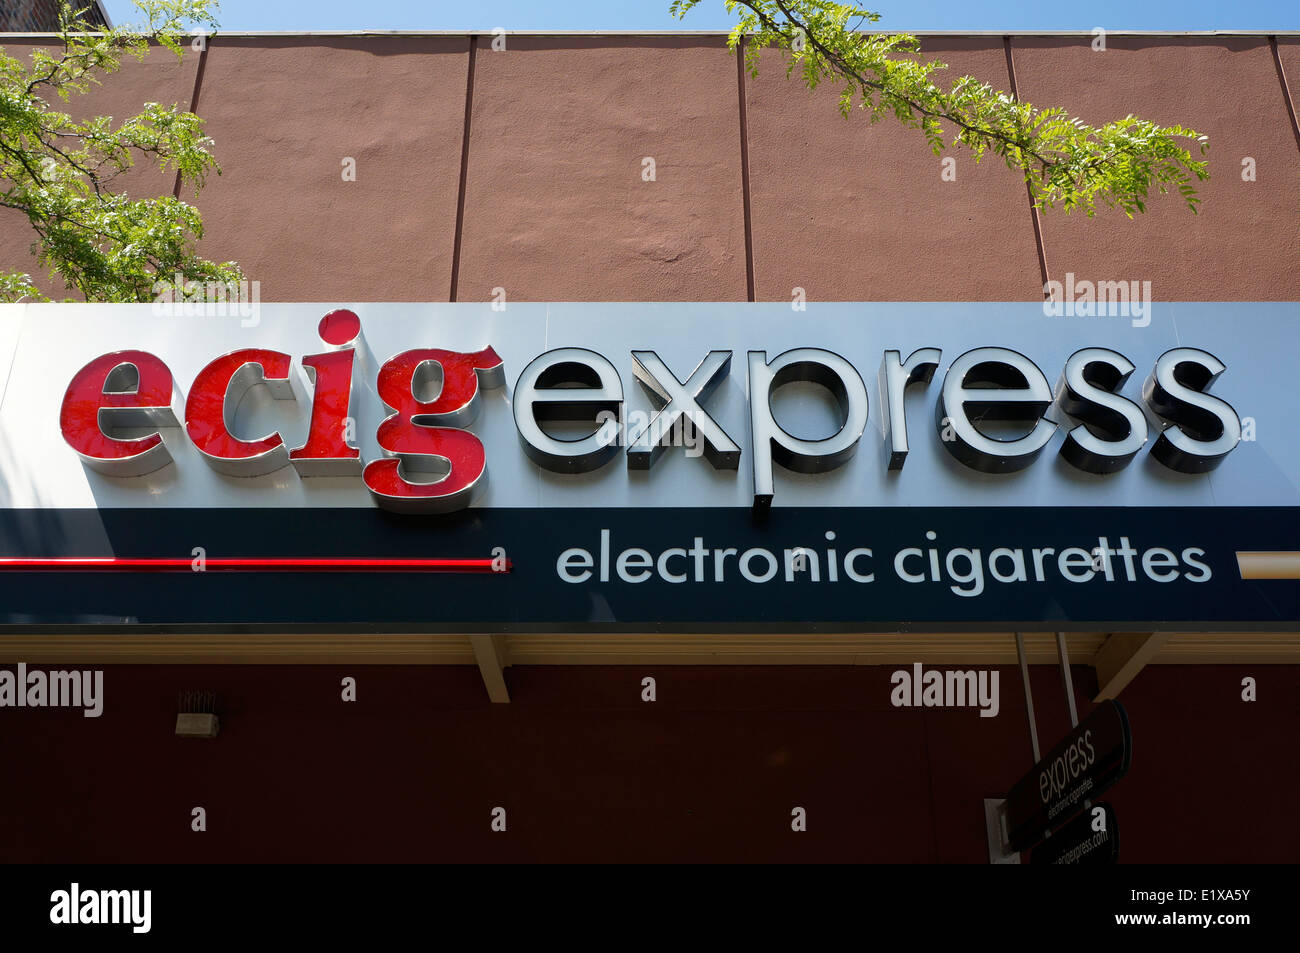 Electronic cigarettes store sign in Bellingham, Washington state, USA - Stock Image